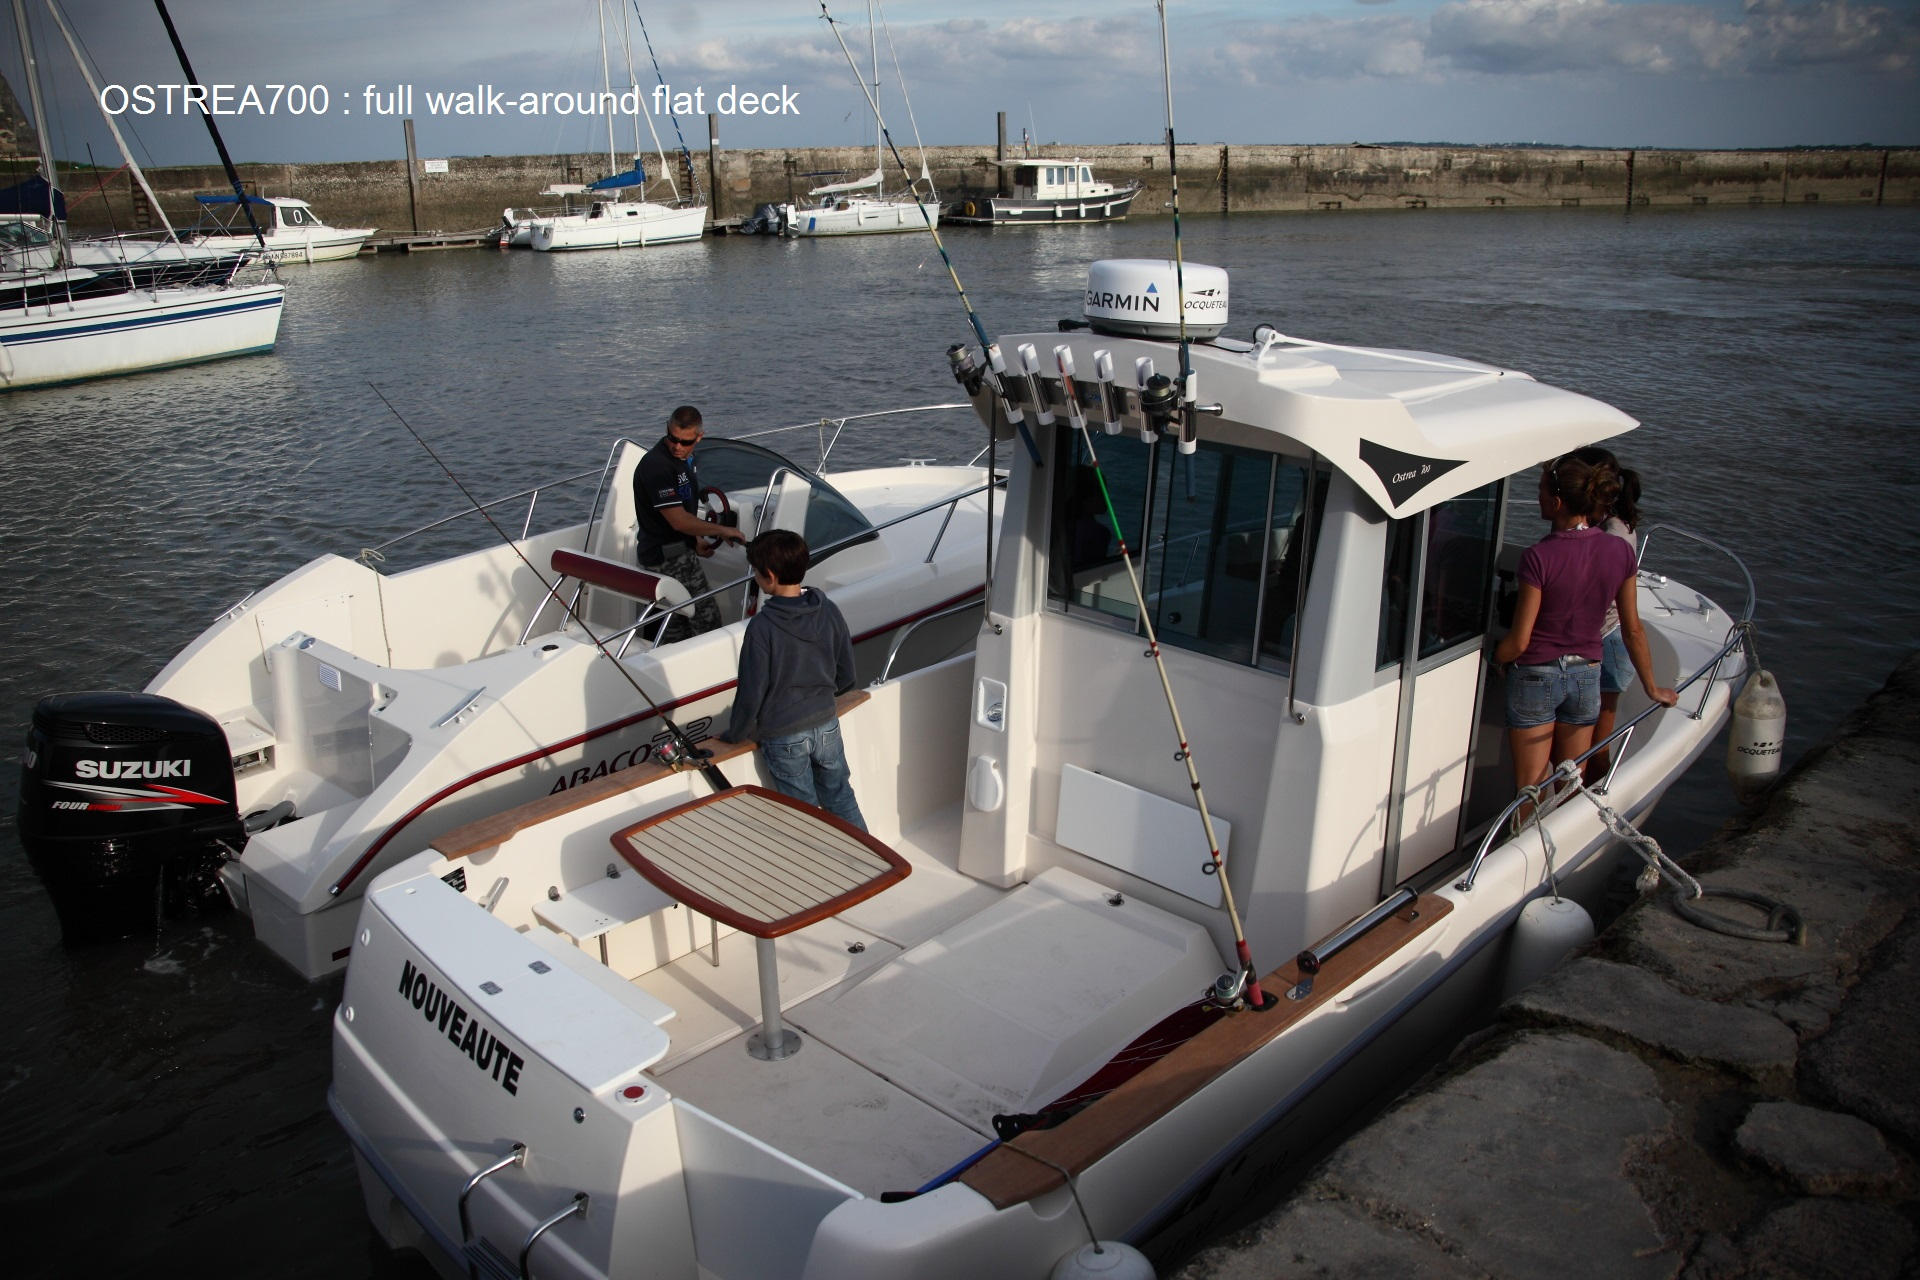 OCQUETEAU OSTREA 700 FULL WALK AROUND FLAT DECK